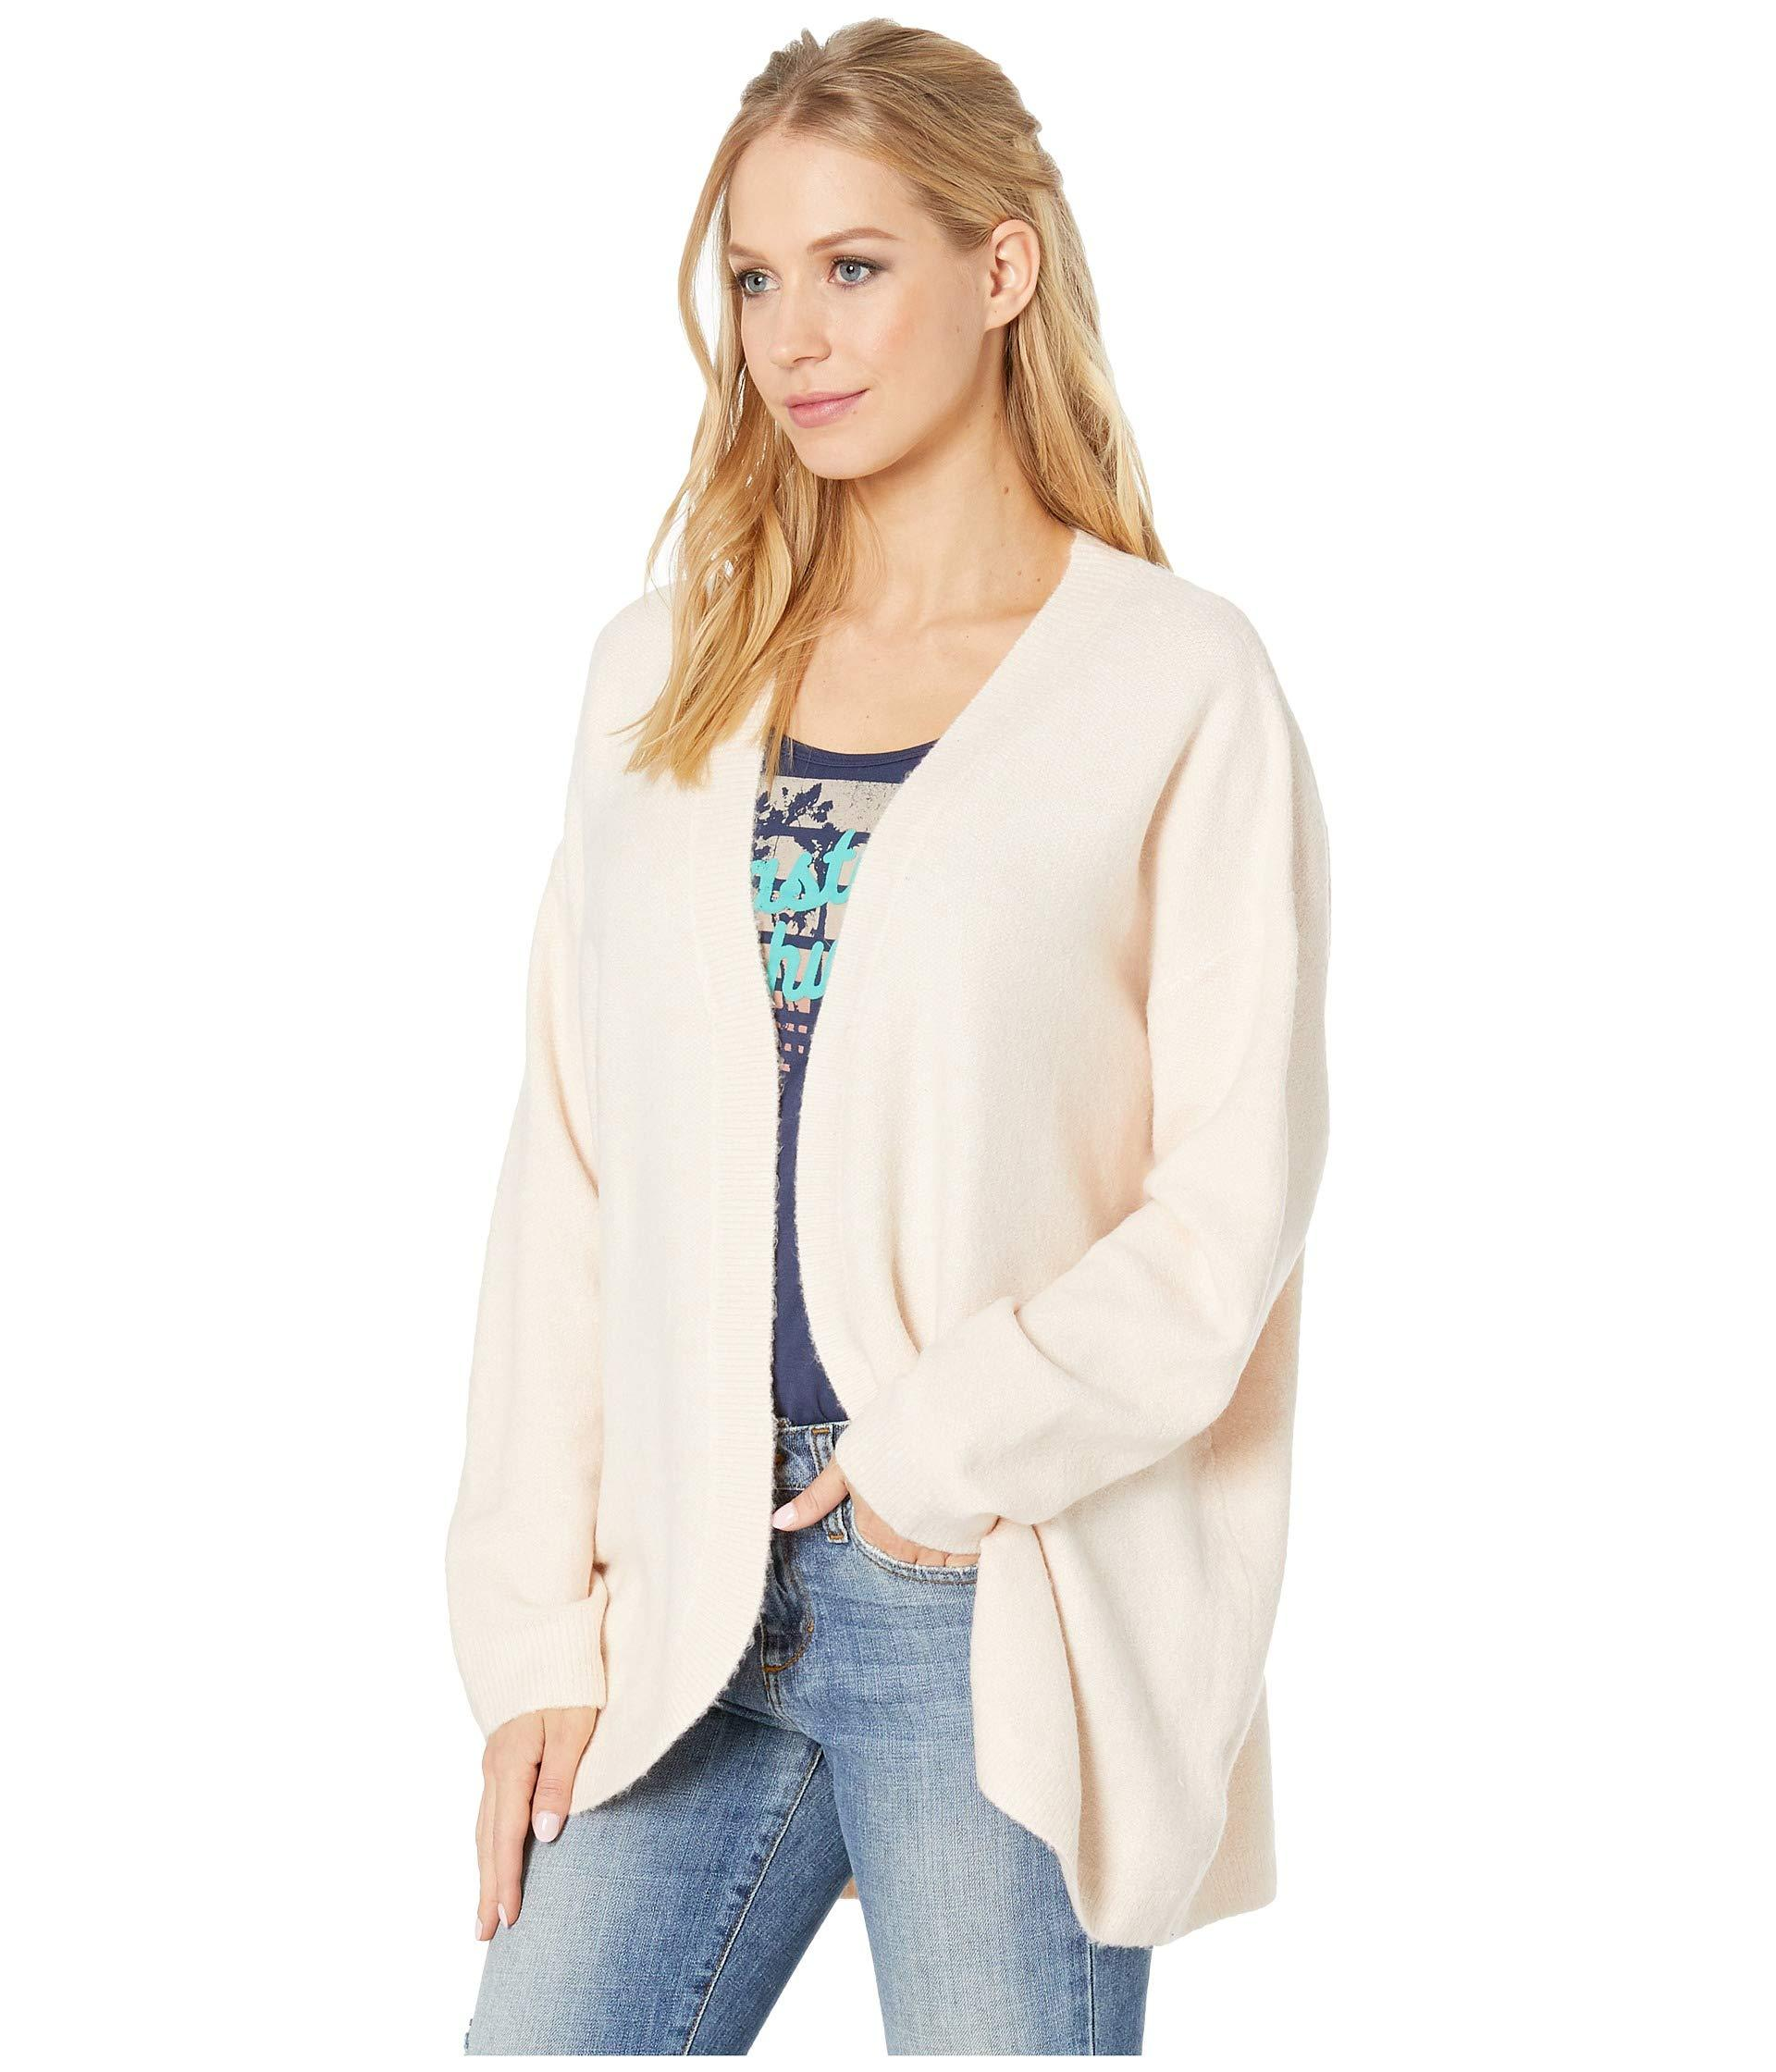 Lyst - Roxy Delicate Mind Cardigan (cloud Pink) Women s Sweater in Pink -  Save 1% a1c2157b5